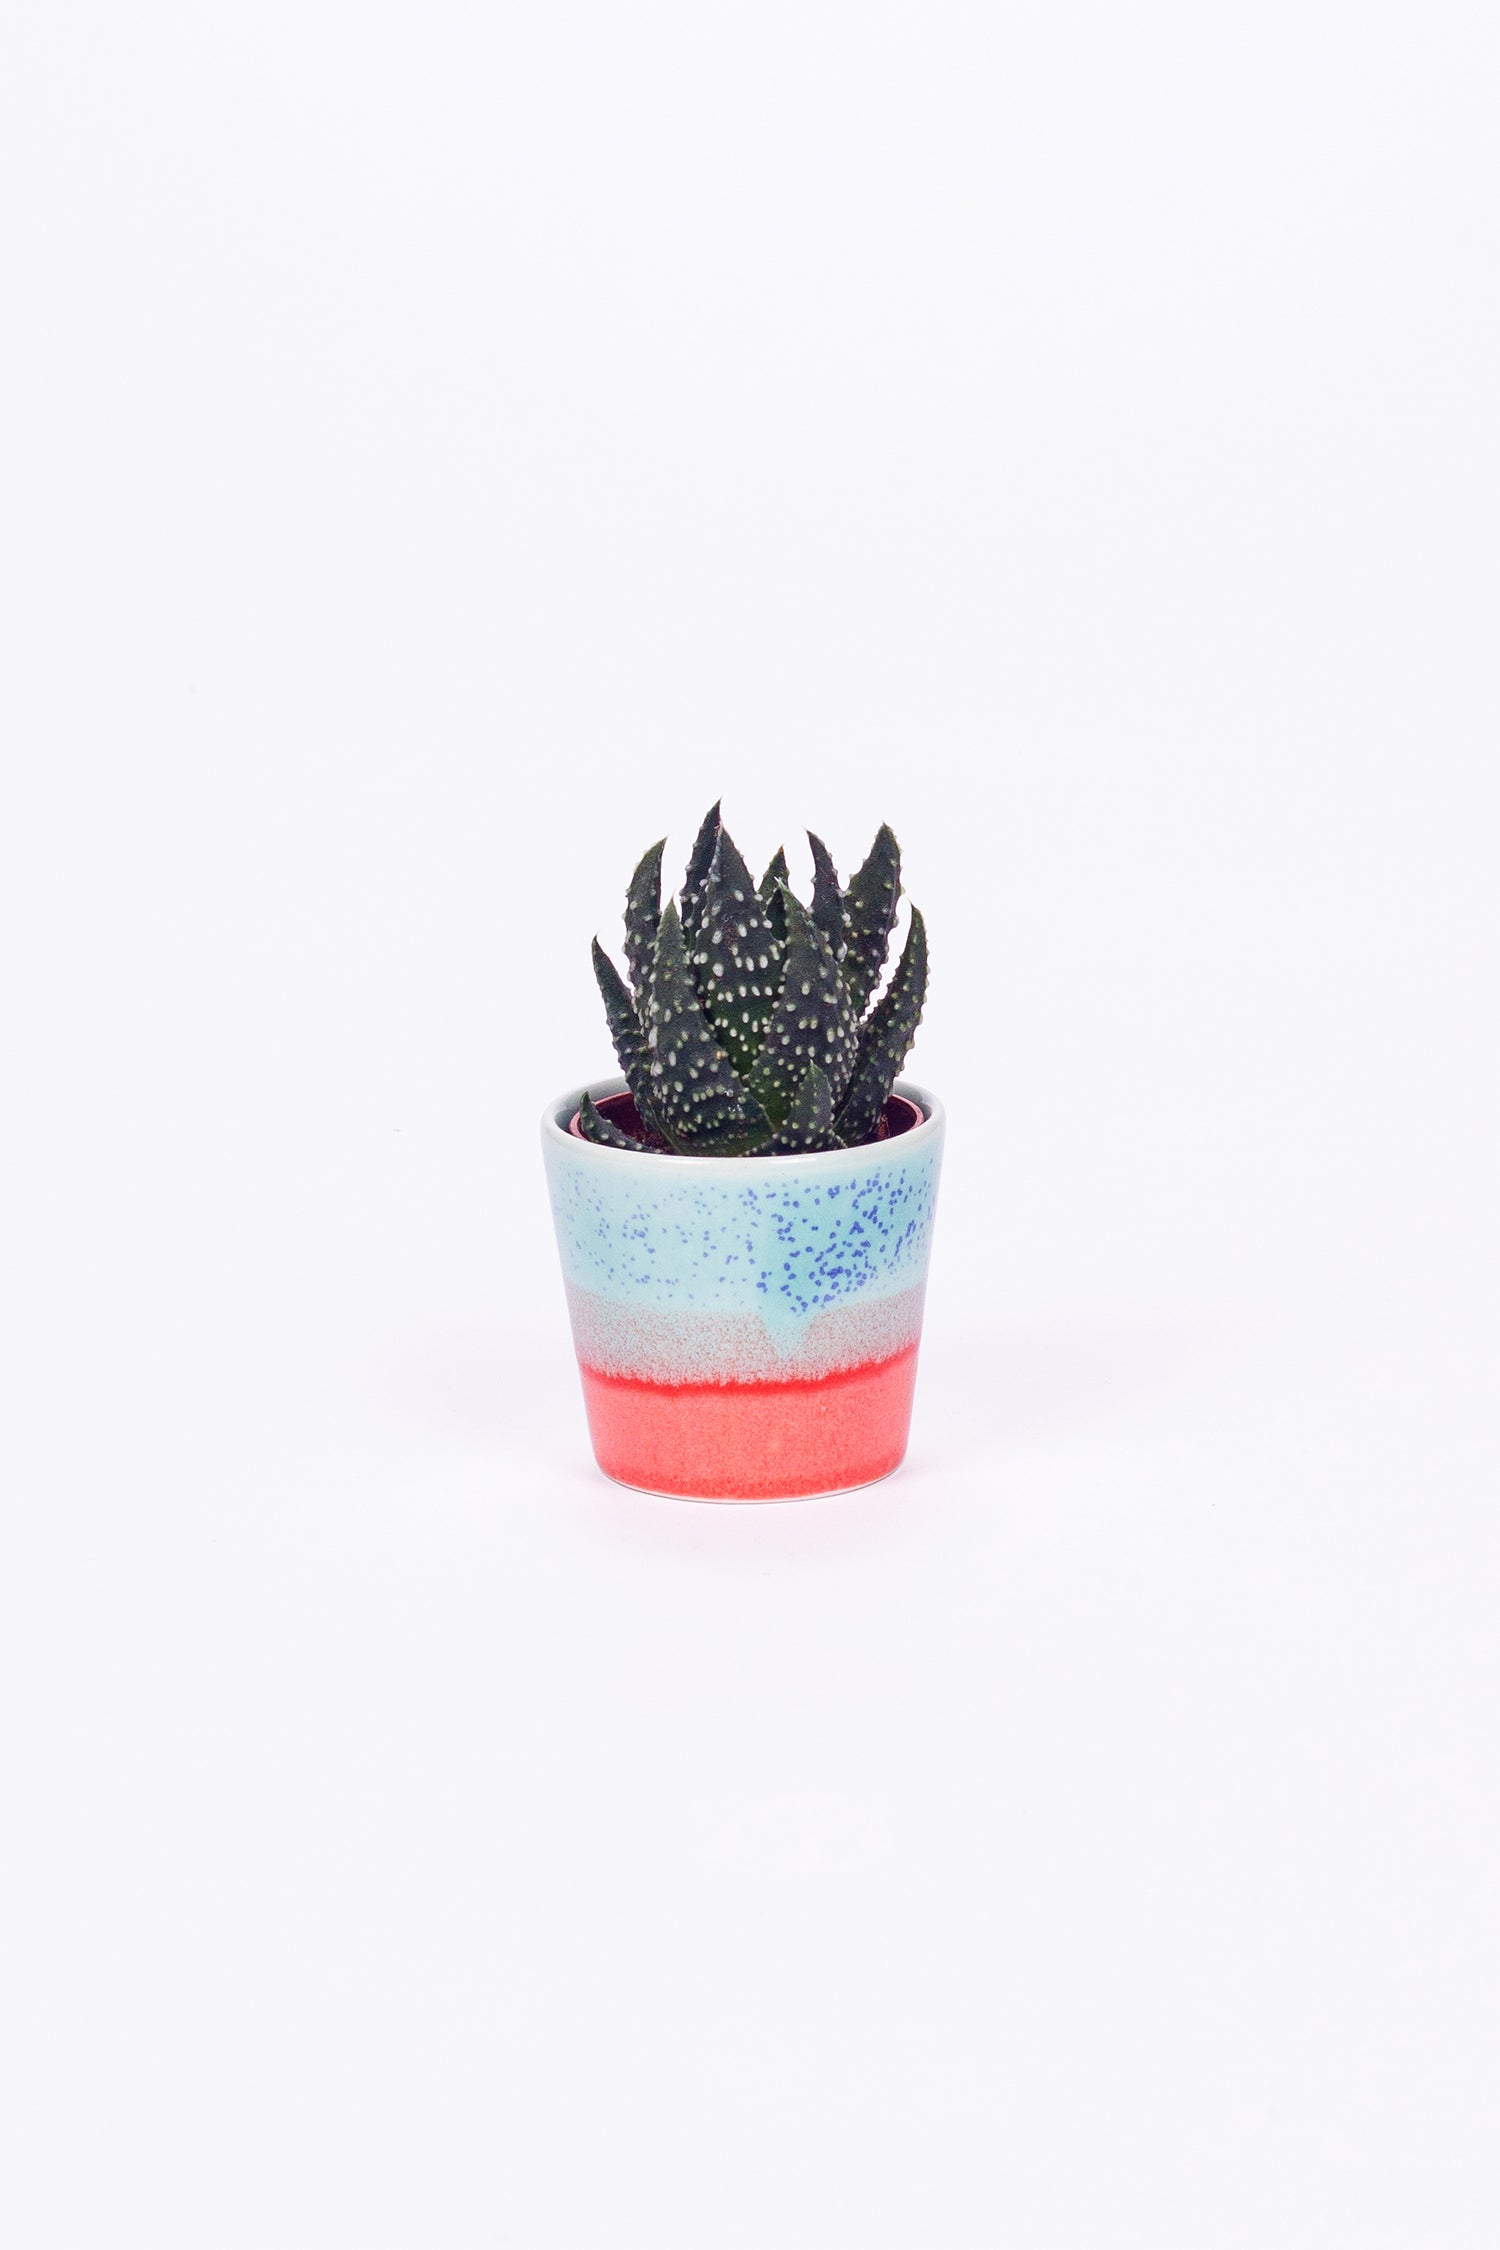 SGW LAB PLANT POT - CORAL REEF